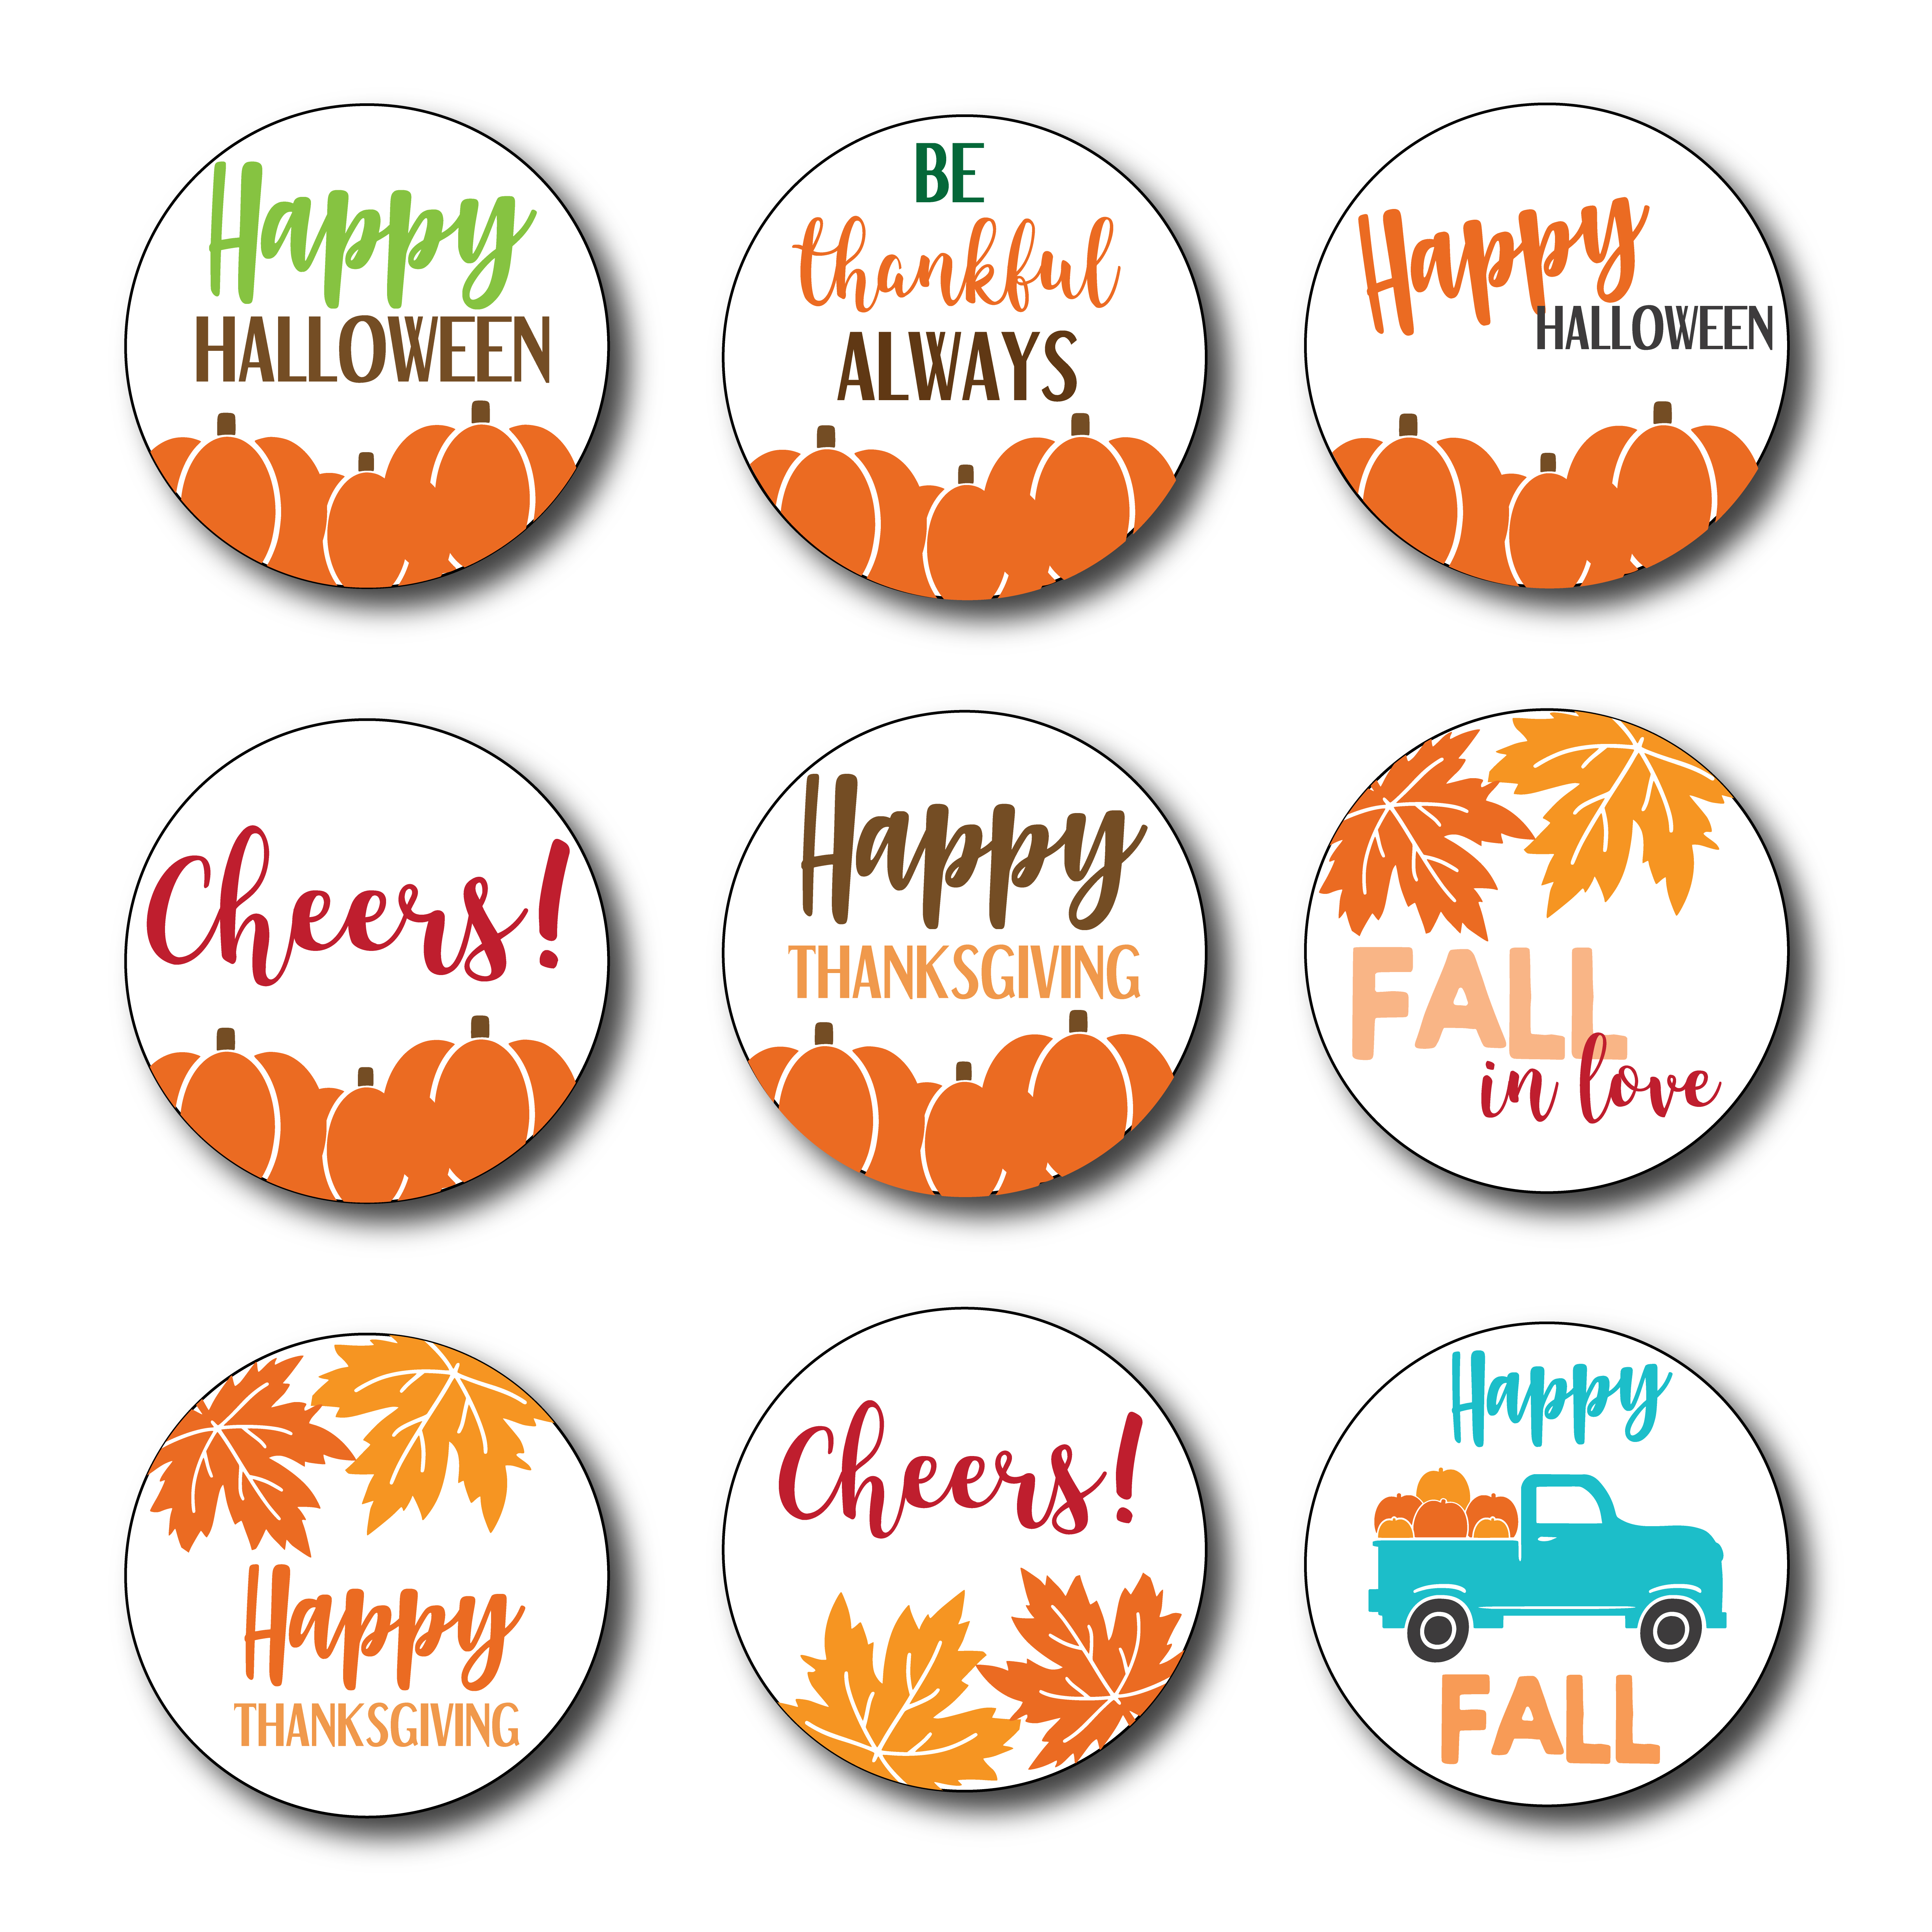 Halloween Stickers Aesthetic.Fall Themed Stickers 18 Printable Stickers Digital File